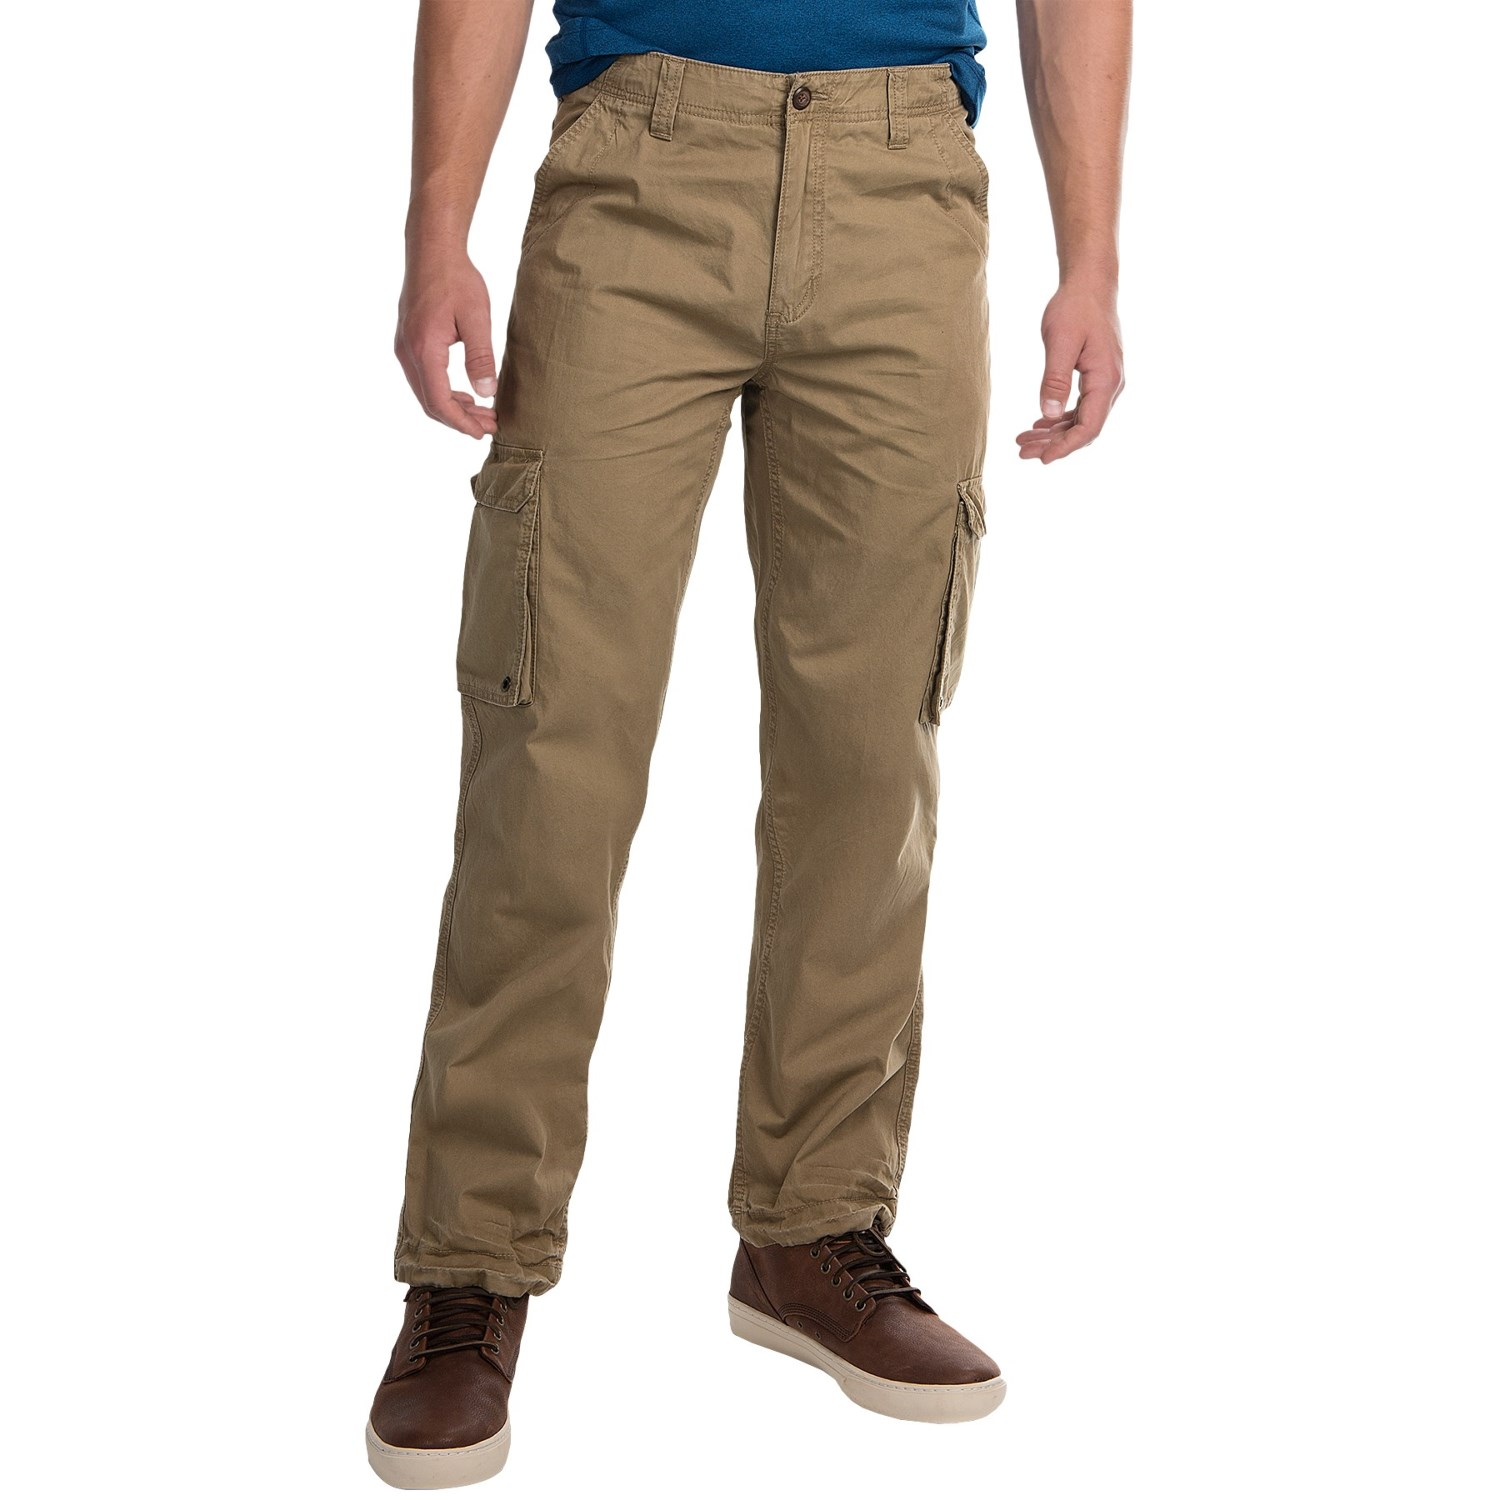 JKL Twill Cargo Pants (For Men) - Save 71%